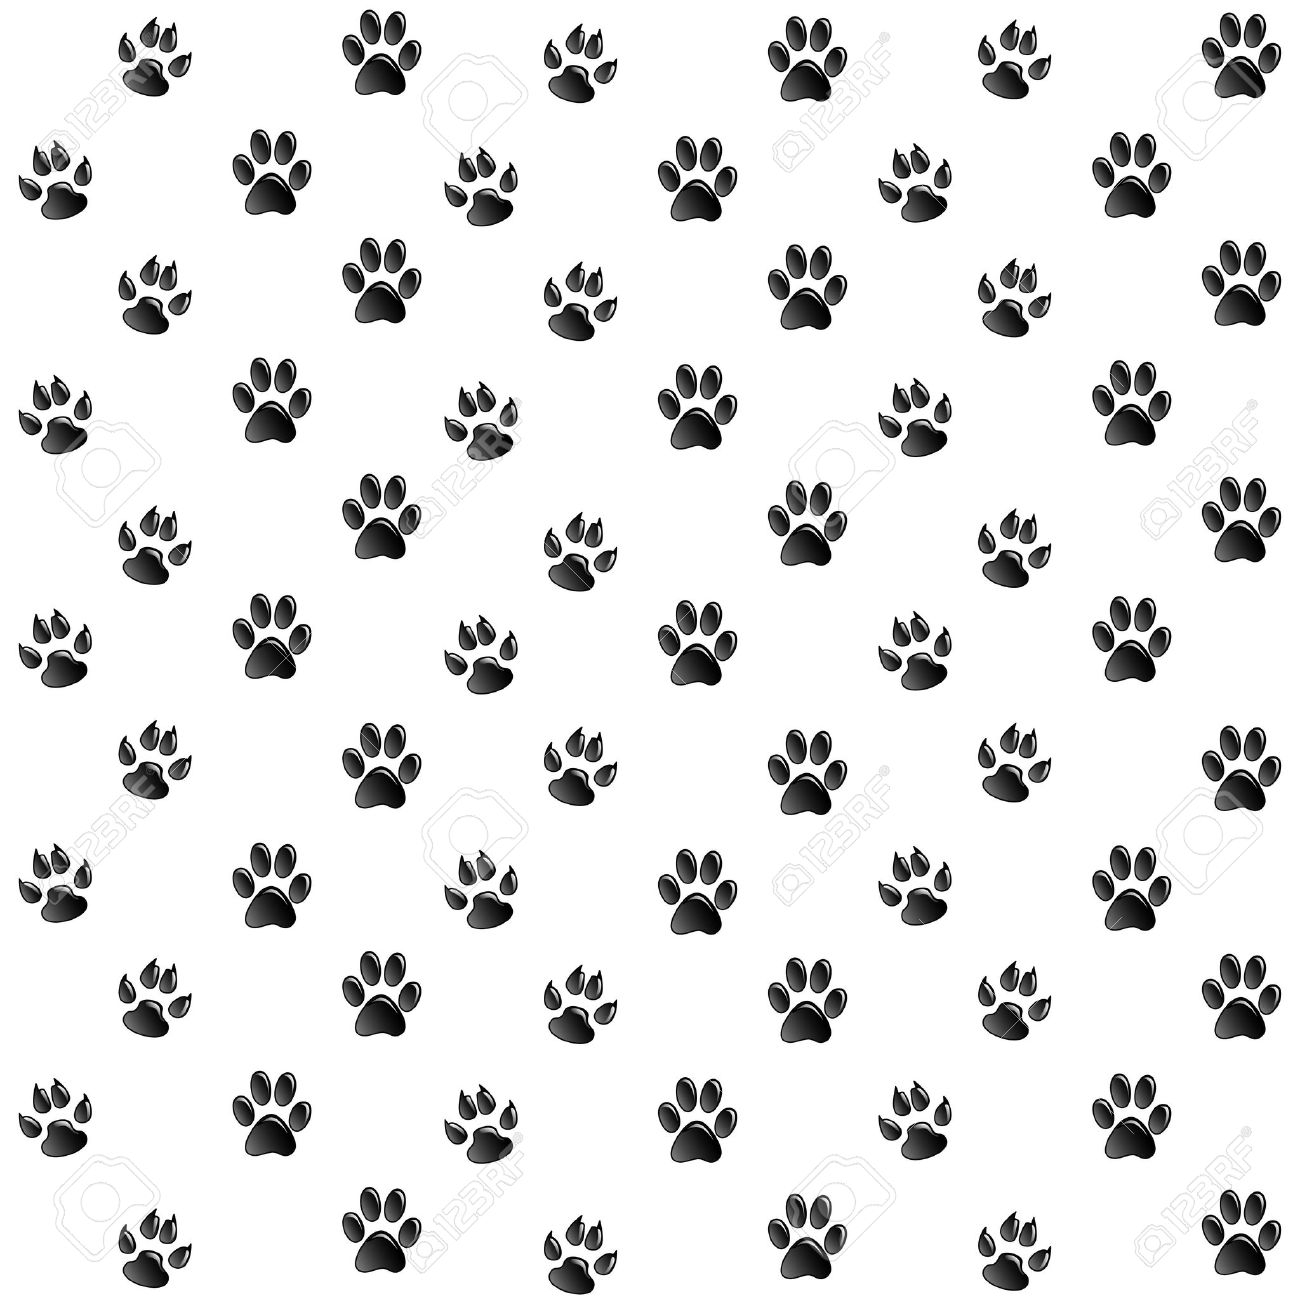 Cat Paw Print Wallpaper